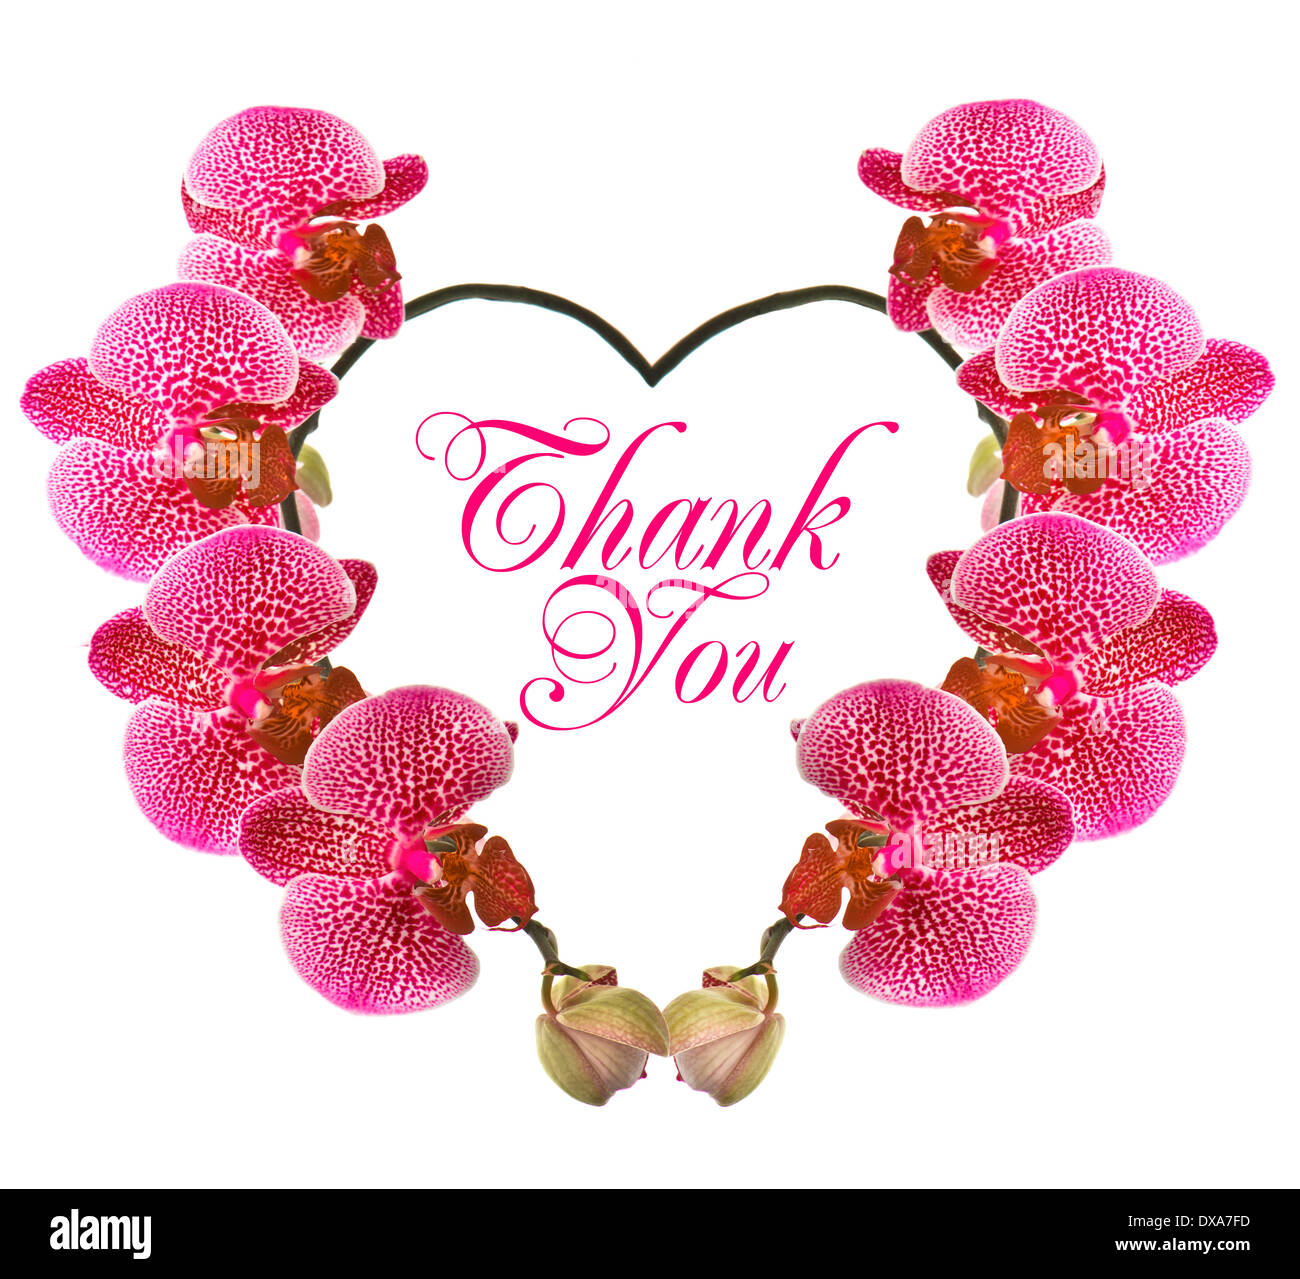 Beautiful Thank You Cards thank you card with pink orchid stock photo, royalty free image